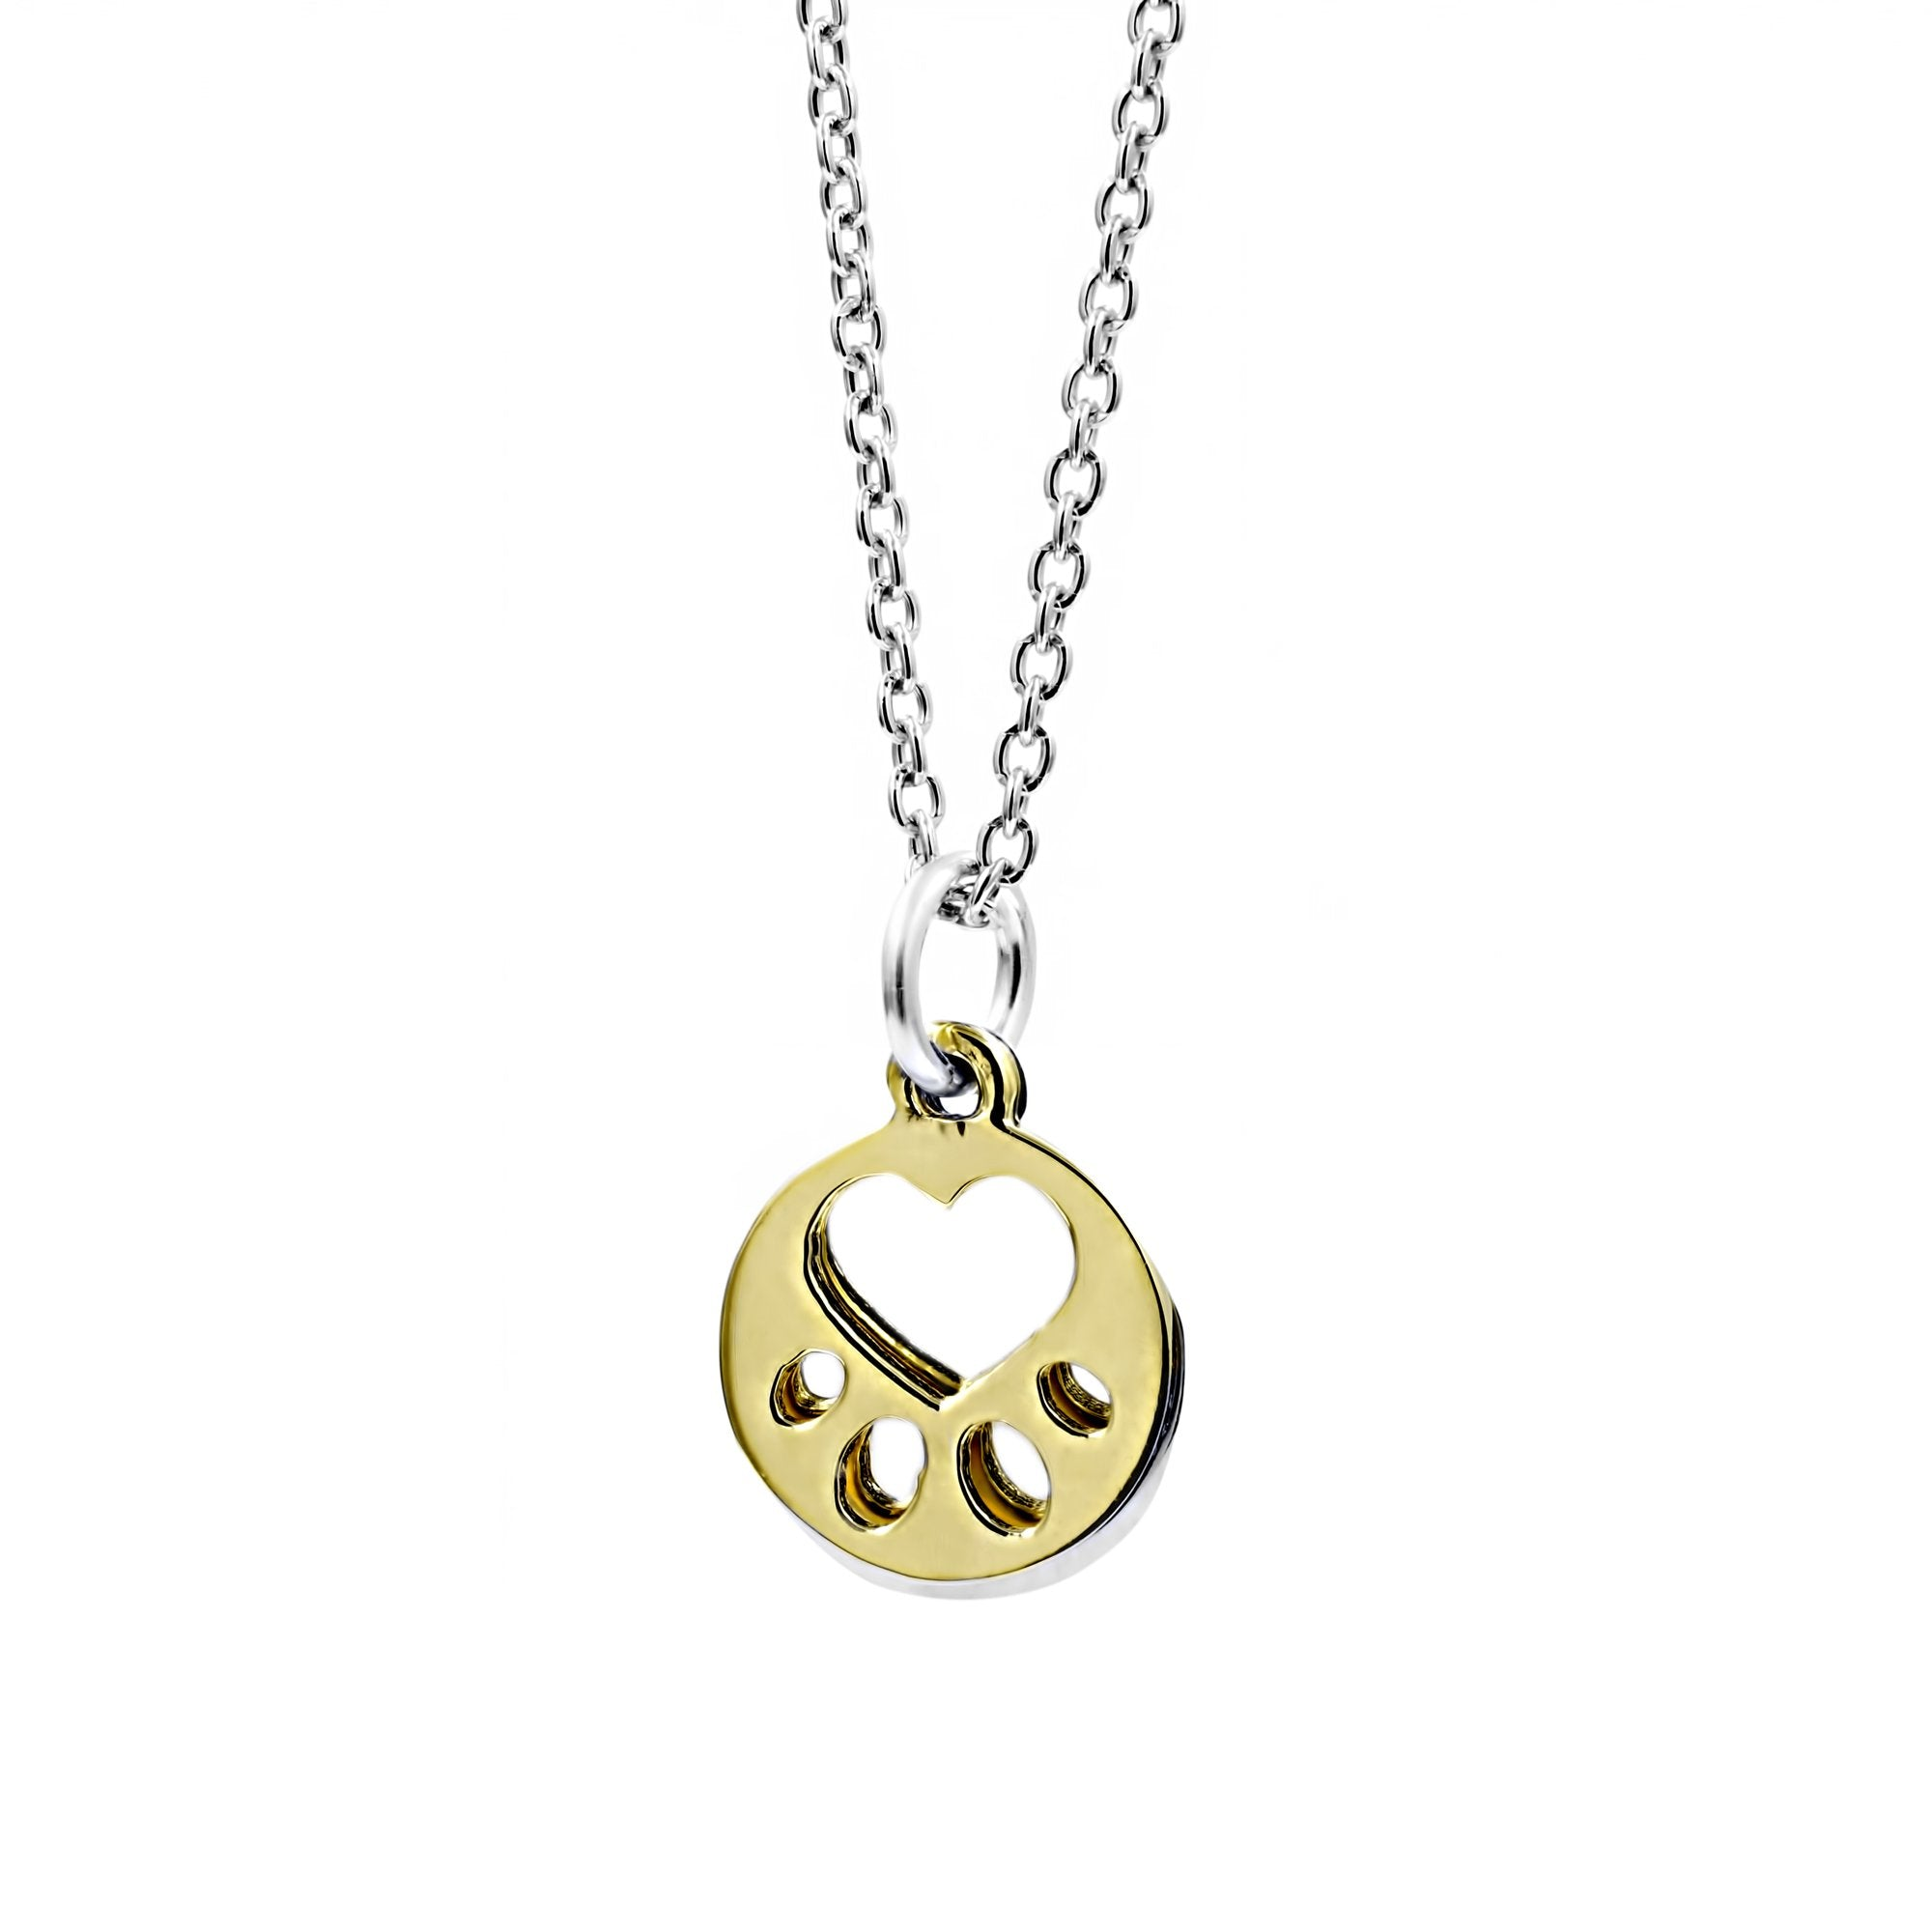 Our Cause for Paws Gold and Sterling Silver Small Paw Pendant Necklace